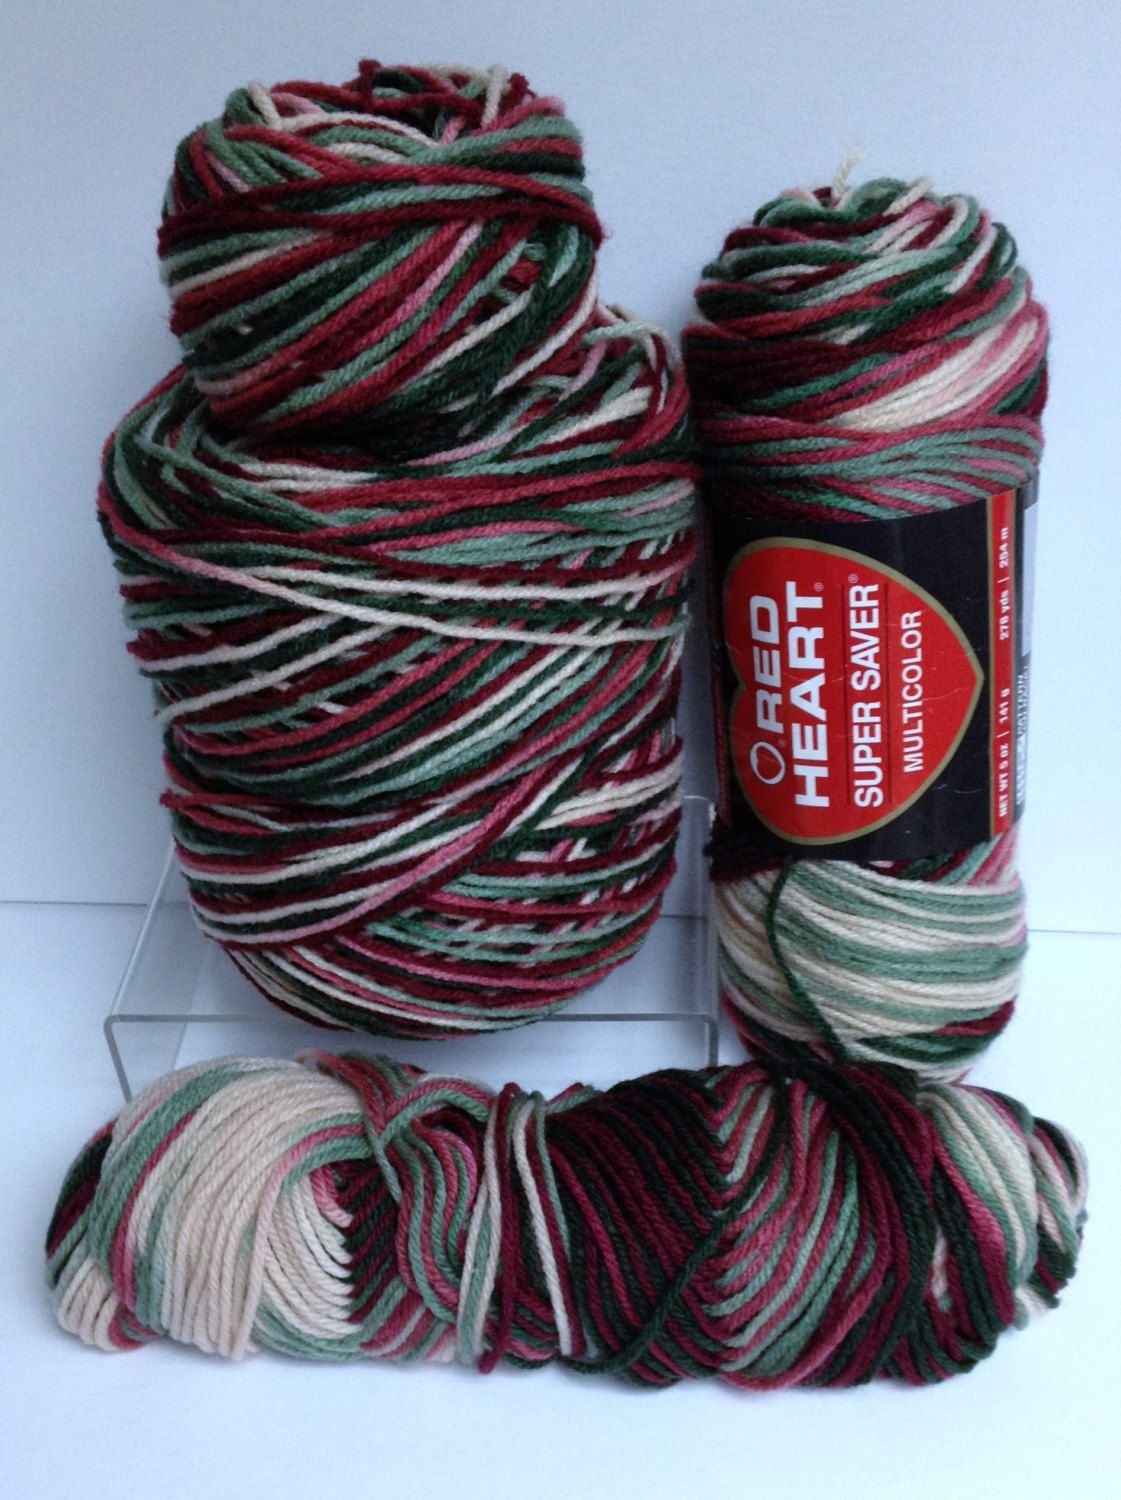 Christmas Colored Yarn With Red Heart Worsted Destash Multicolor Variegated Skeins